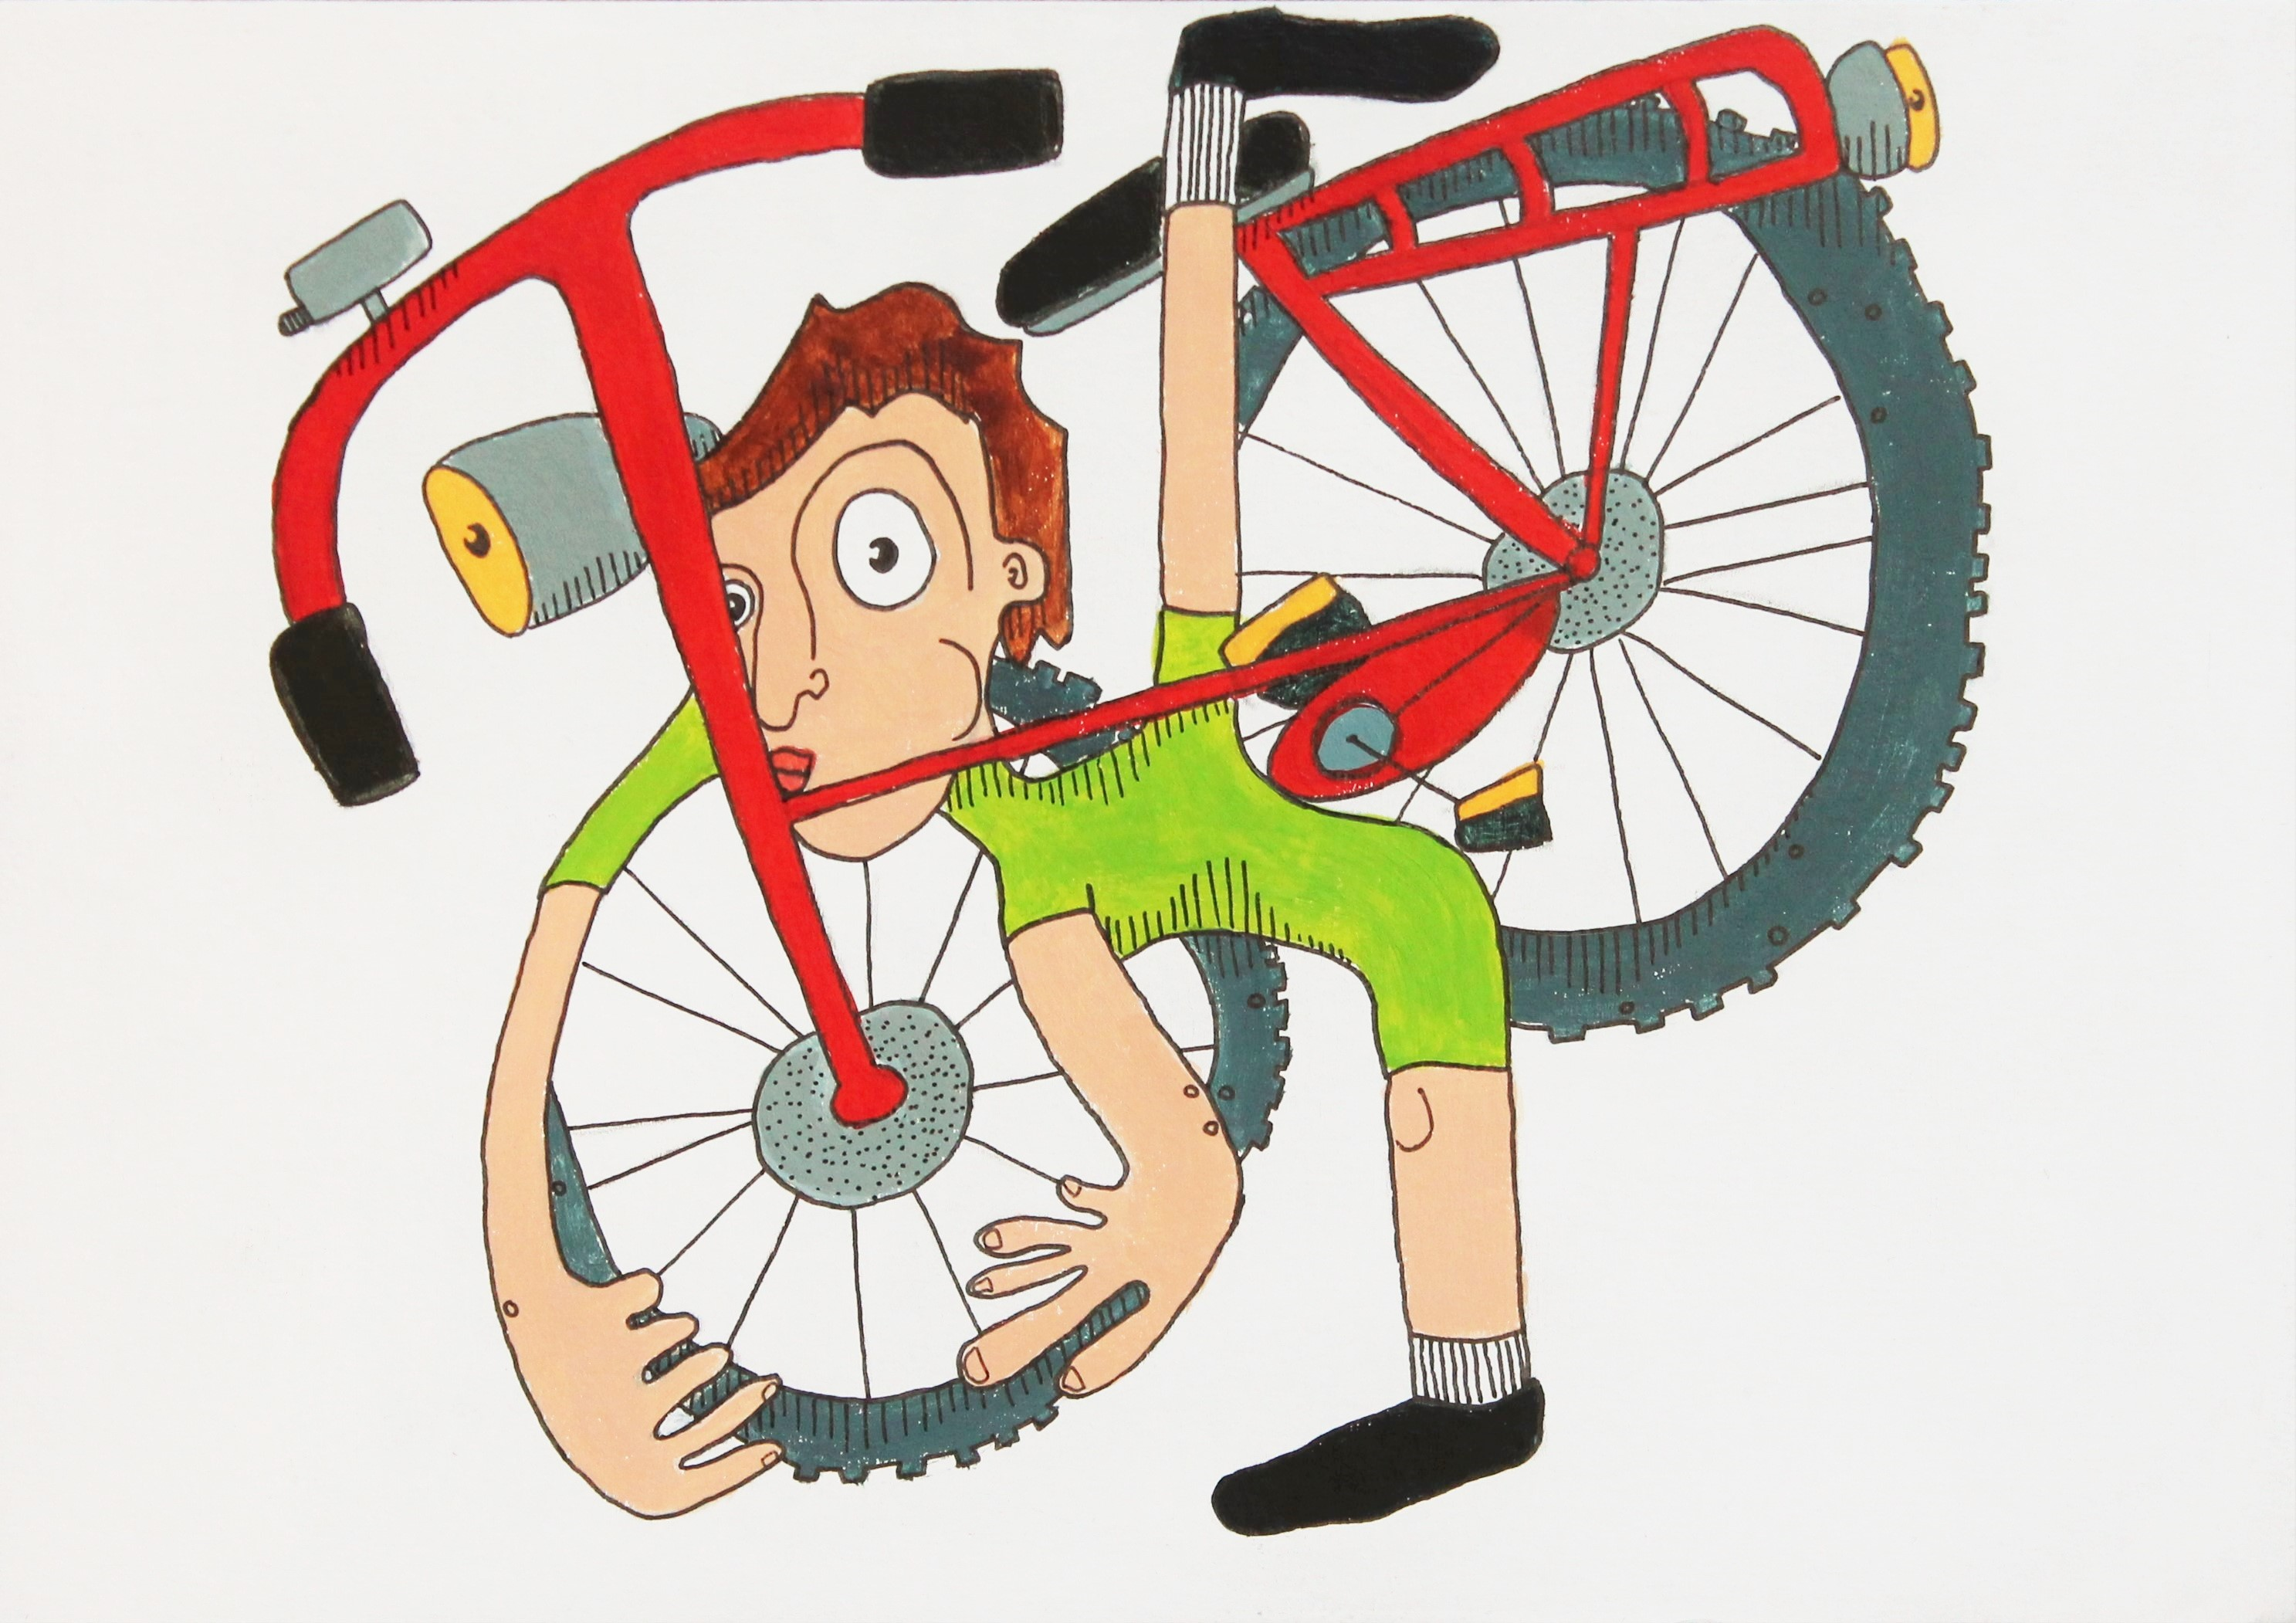 How to hug a bike (vrij werk, 2016)